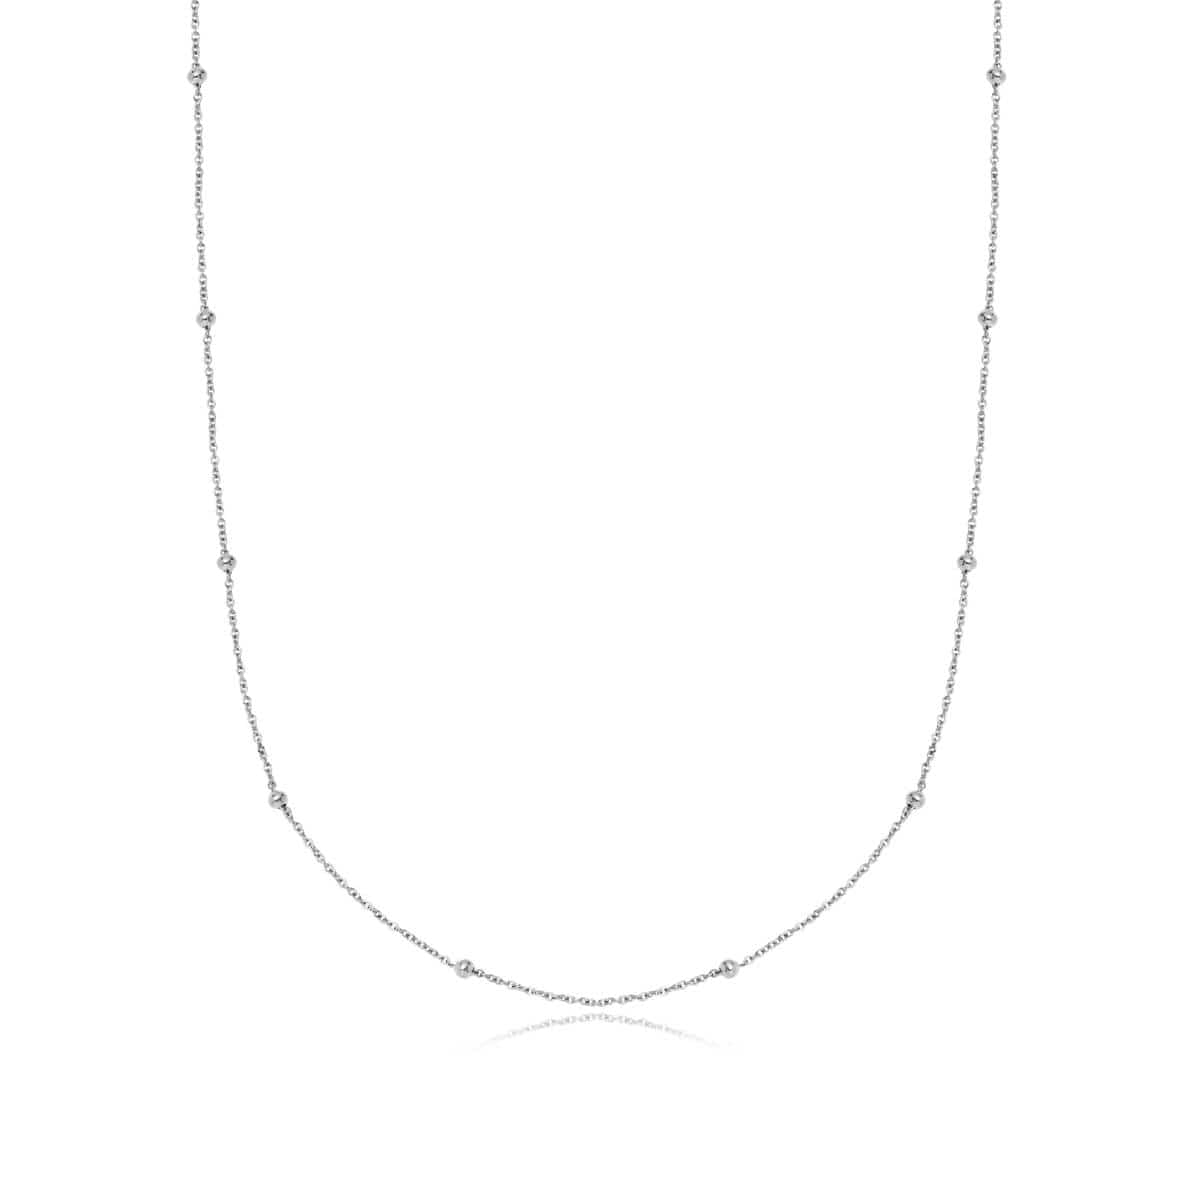 Selected Sphere Chain Necklace 20 in (Silver)